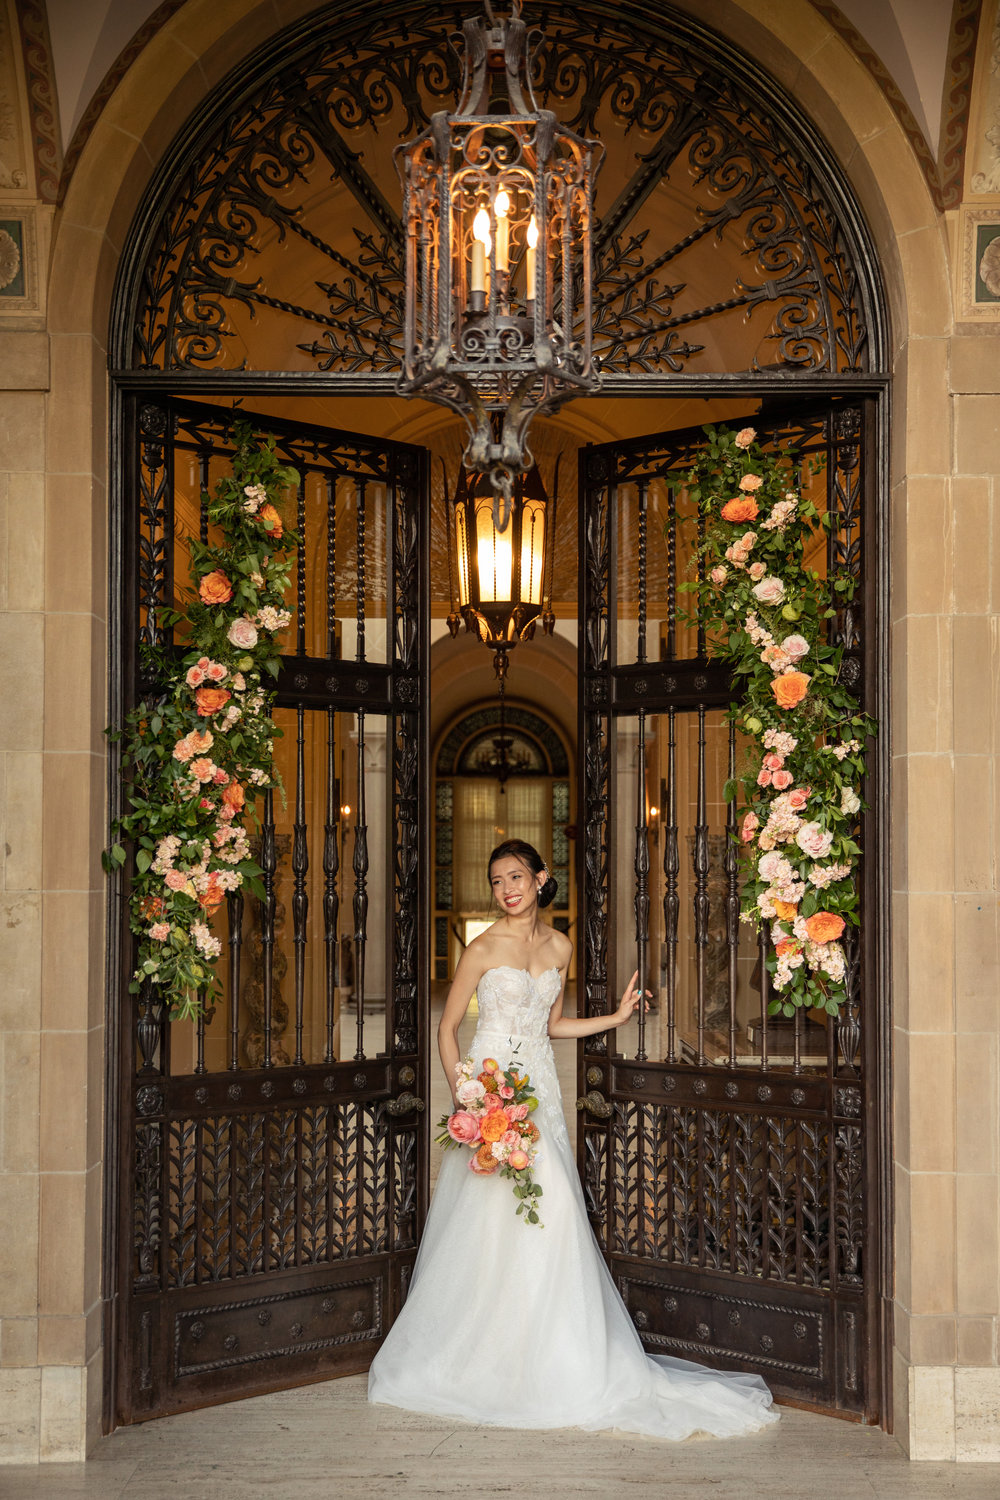 - CORAL AND PEACH GARDEN WEDDING INSPIRATION